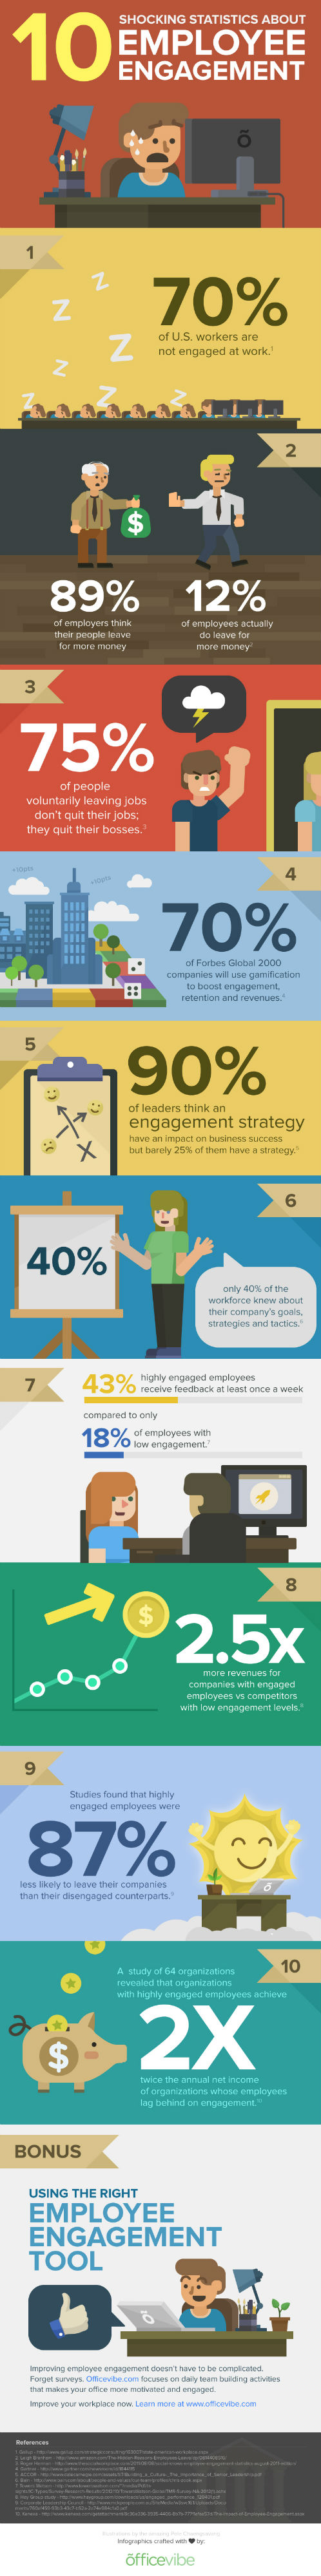 Disengaged Employees [Infographic]